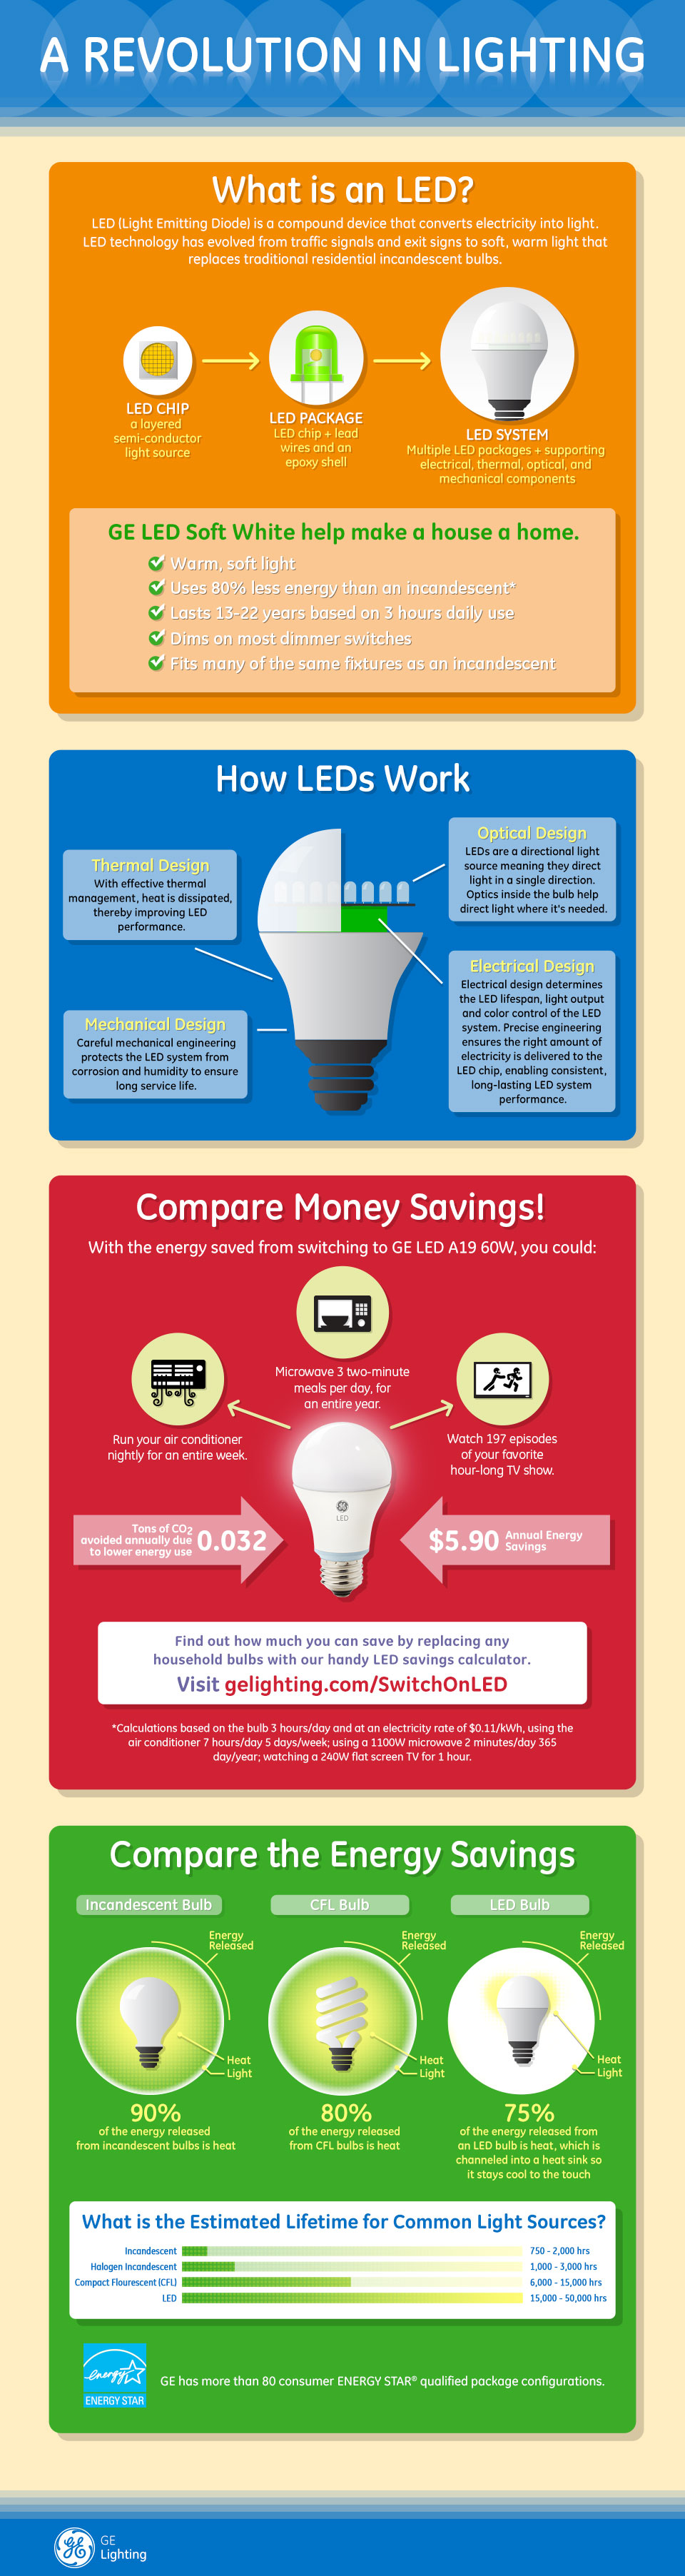 GE-Lighting-Infographic-LED-Revolution-in-Lighting-960x3609